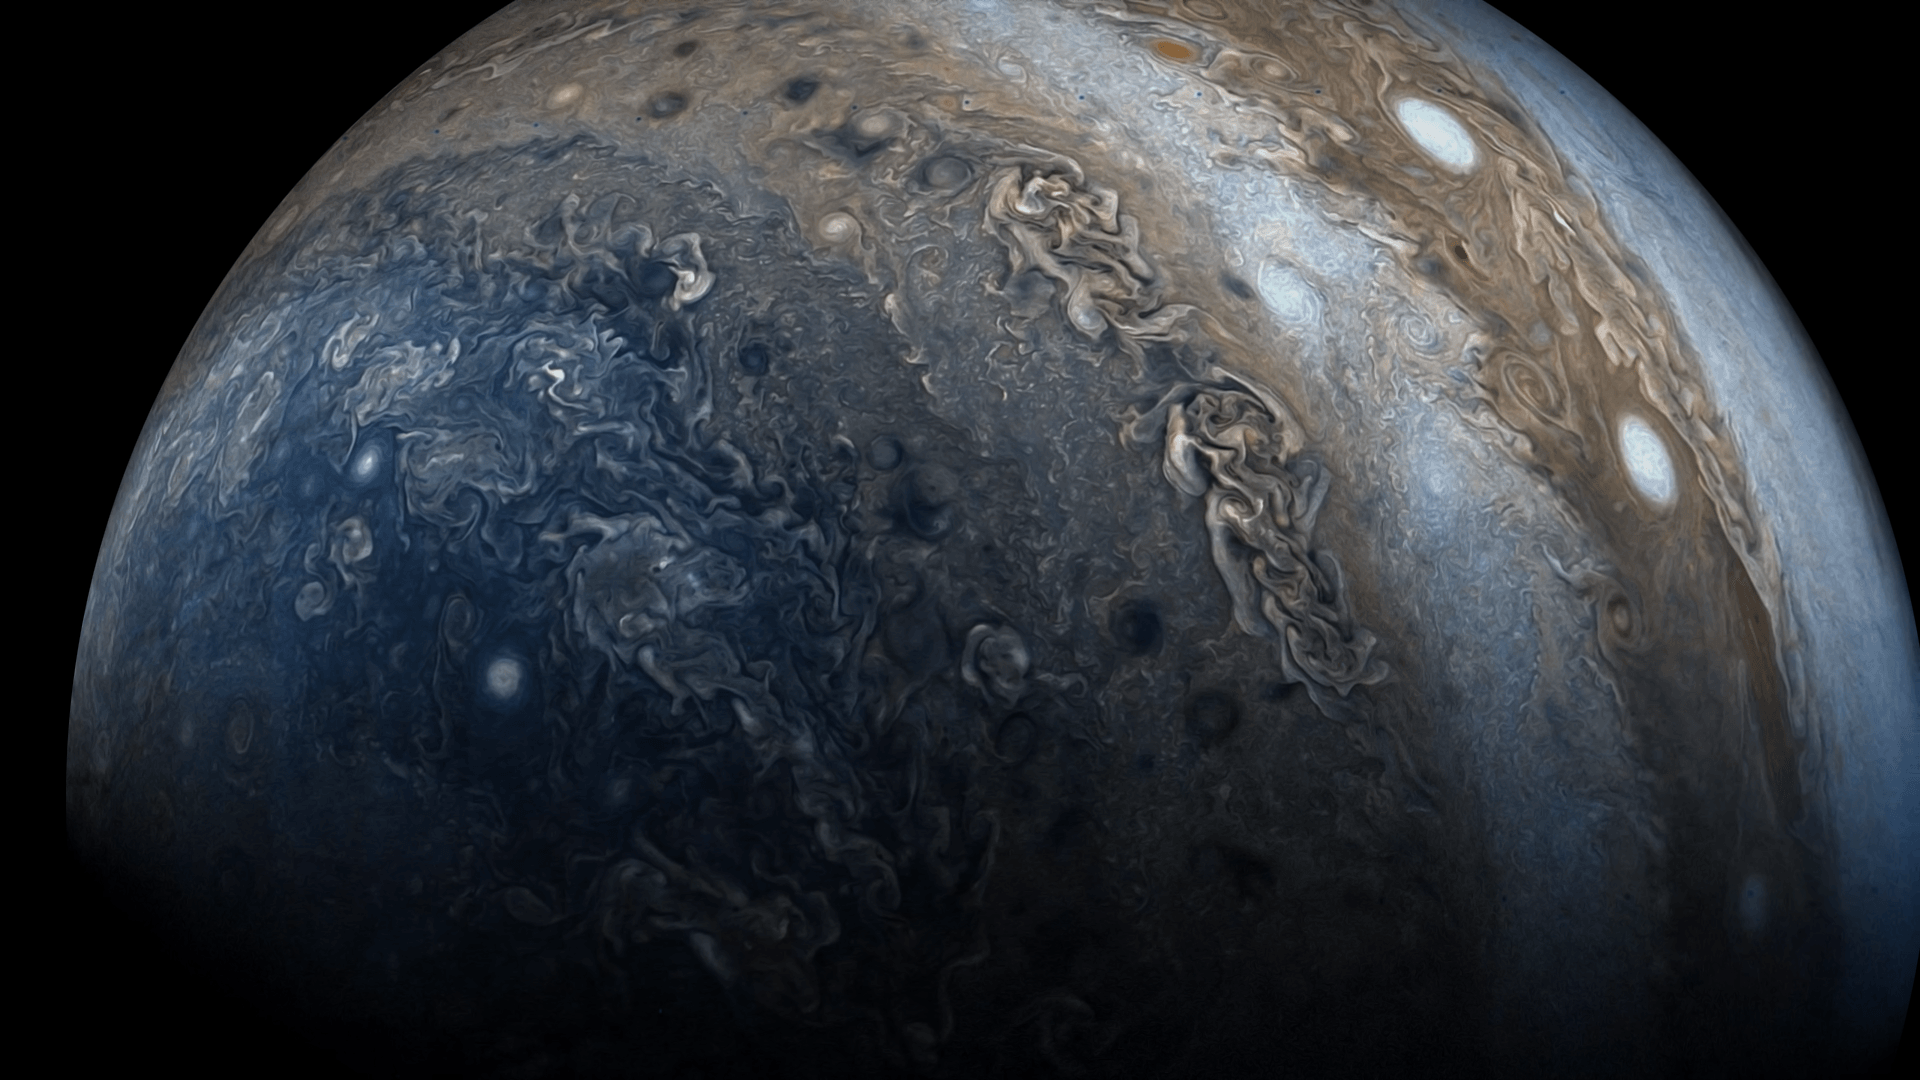 Wallpapers of Jupiter